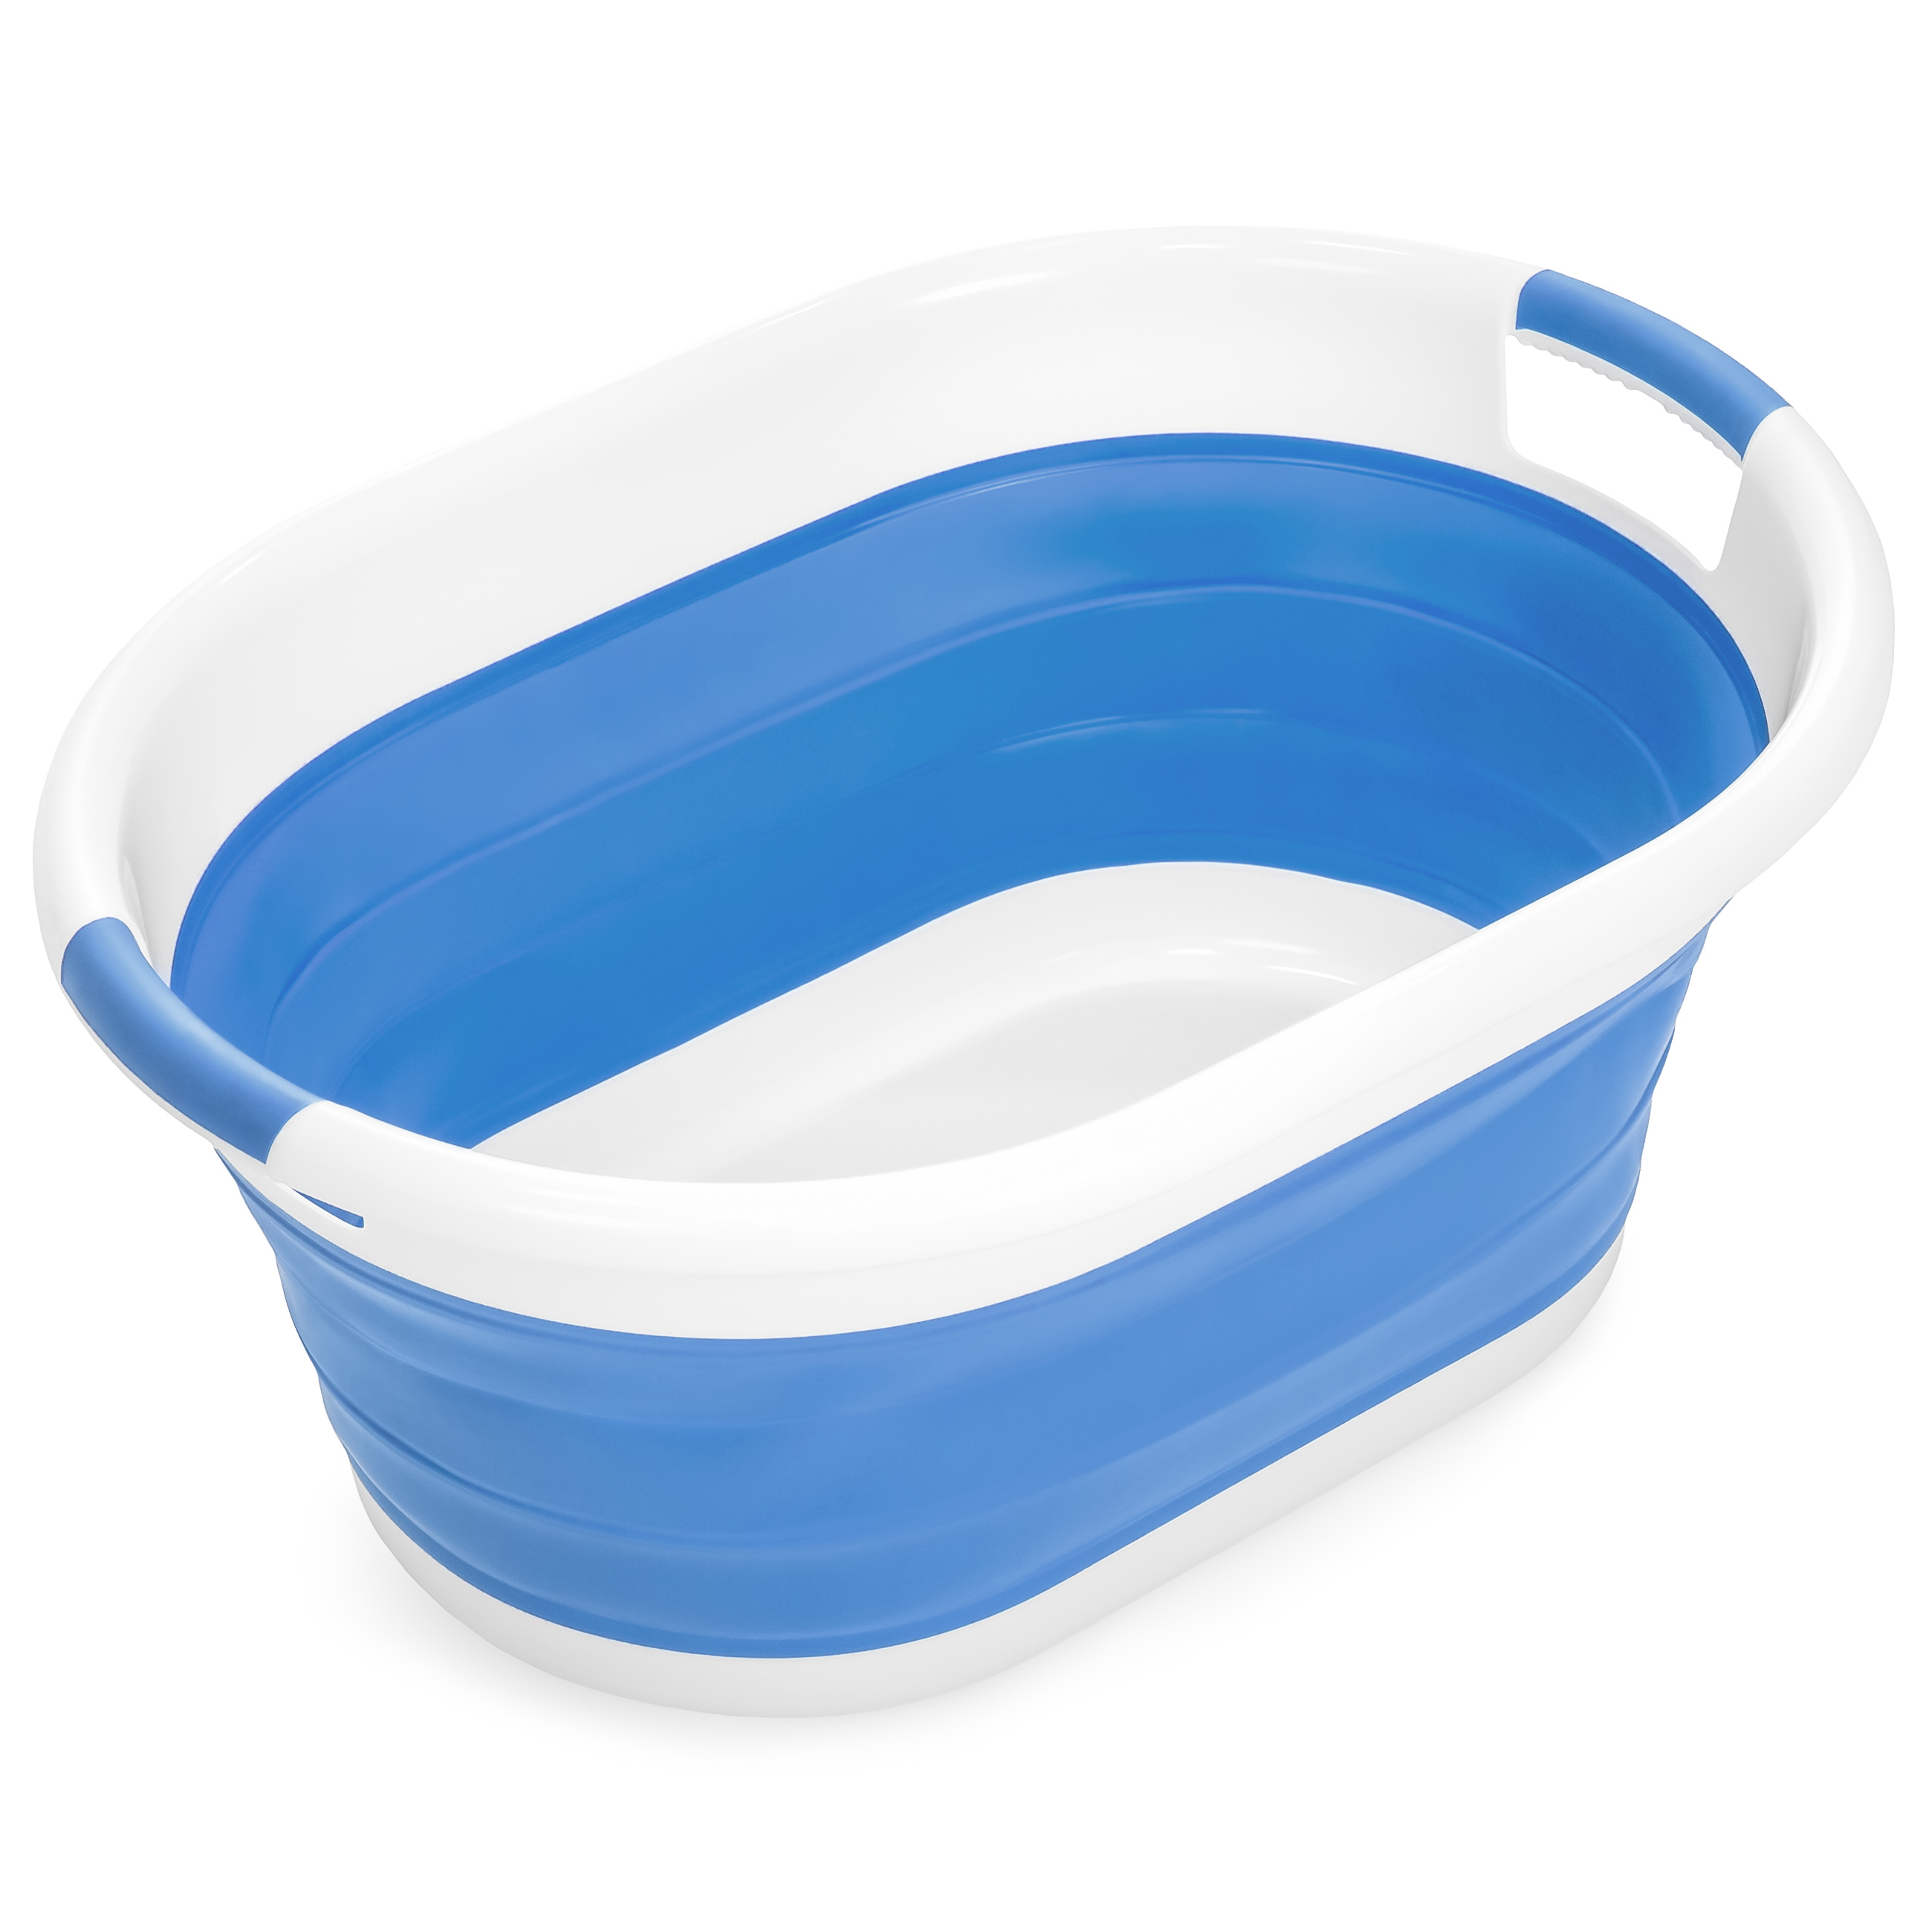 Best Choice Products Collapsible Large Plastic Laundry Basket Storage Container - Blue